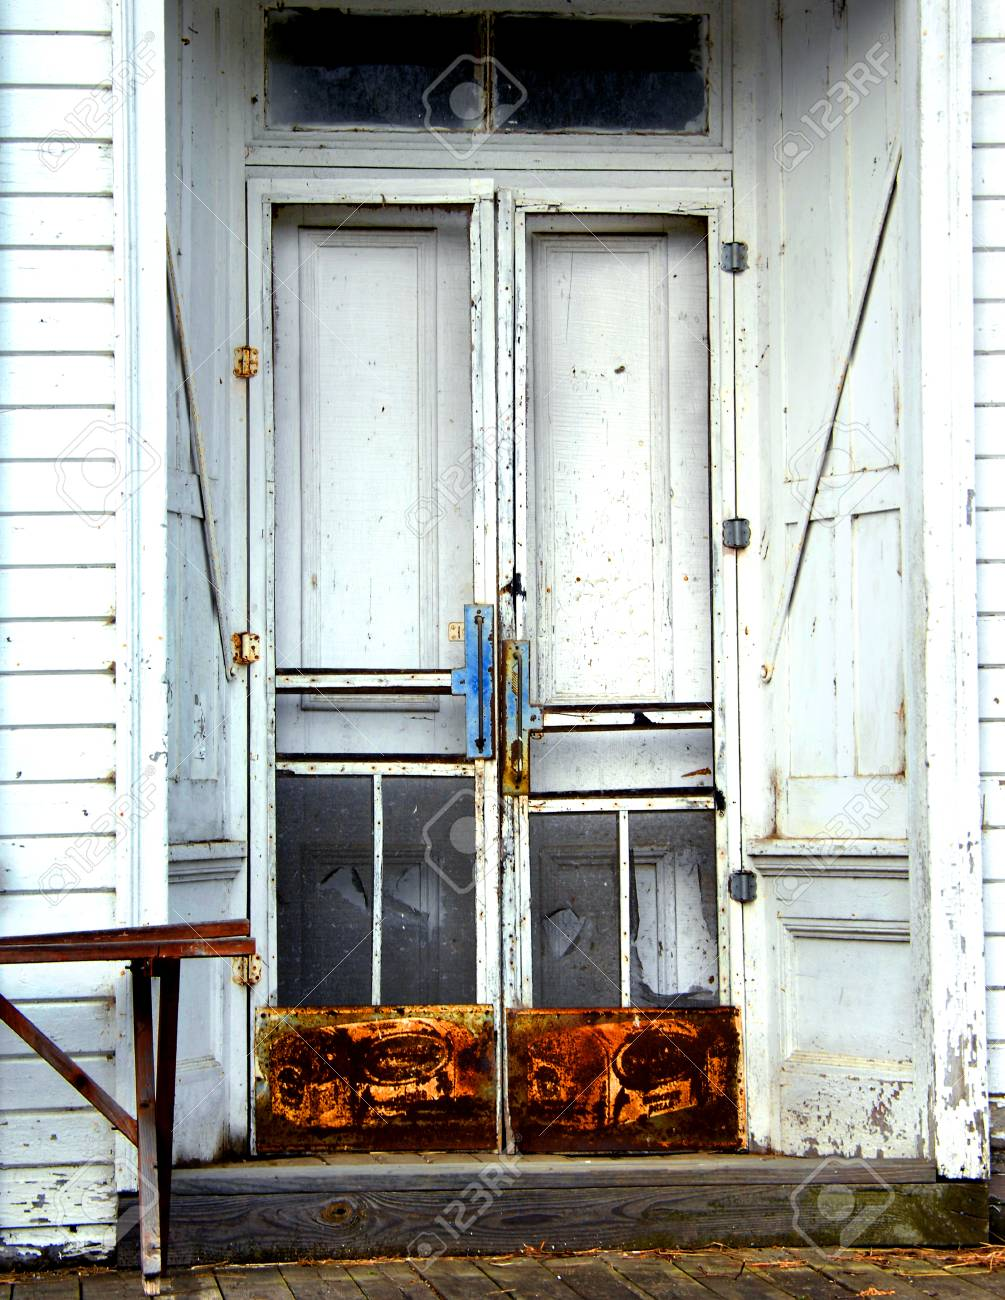 Old Wooden Country Store Has Double Doors With Screen Protectors